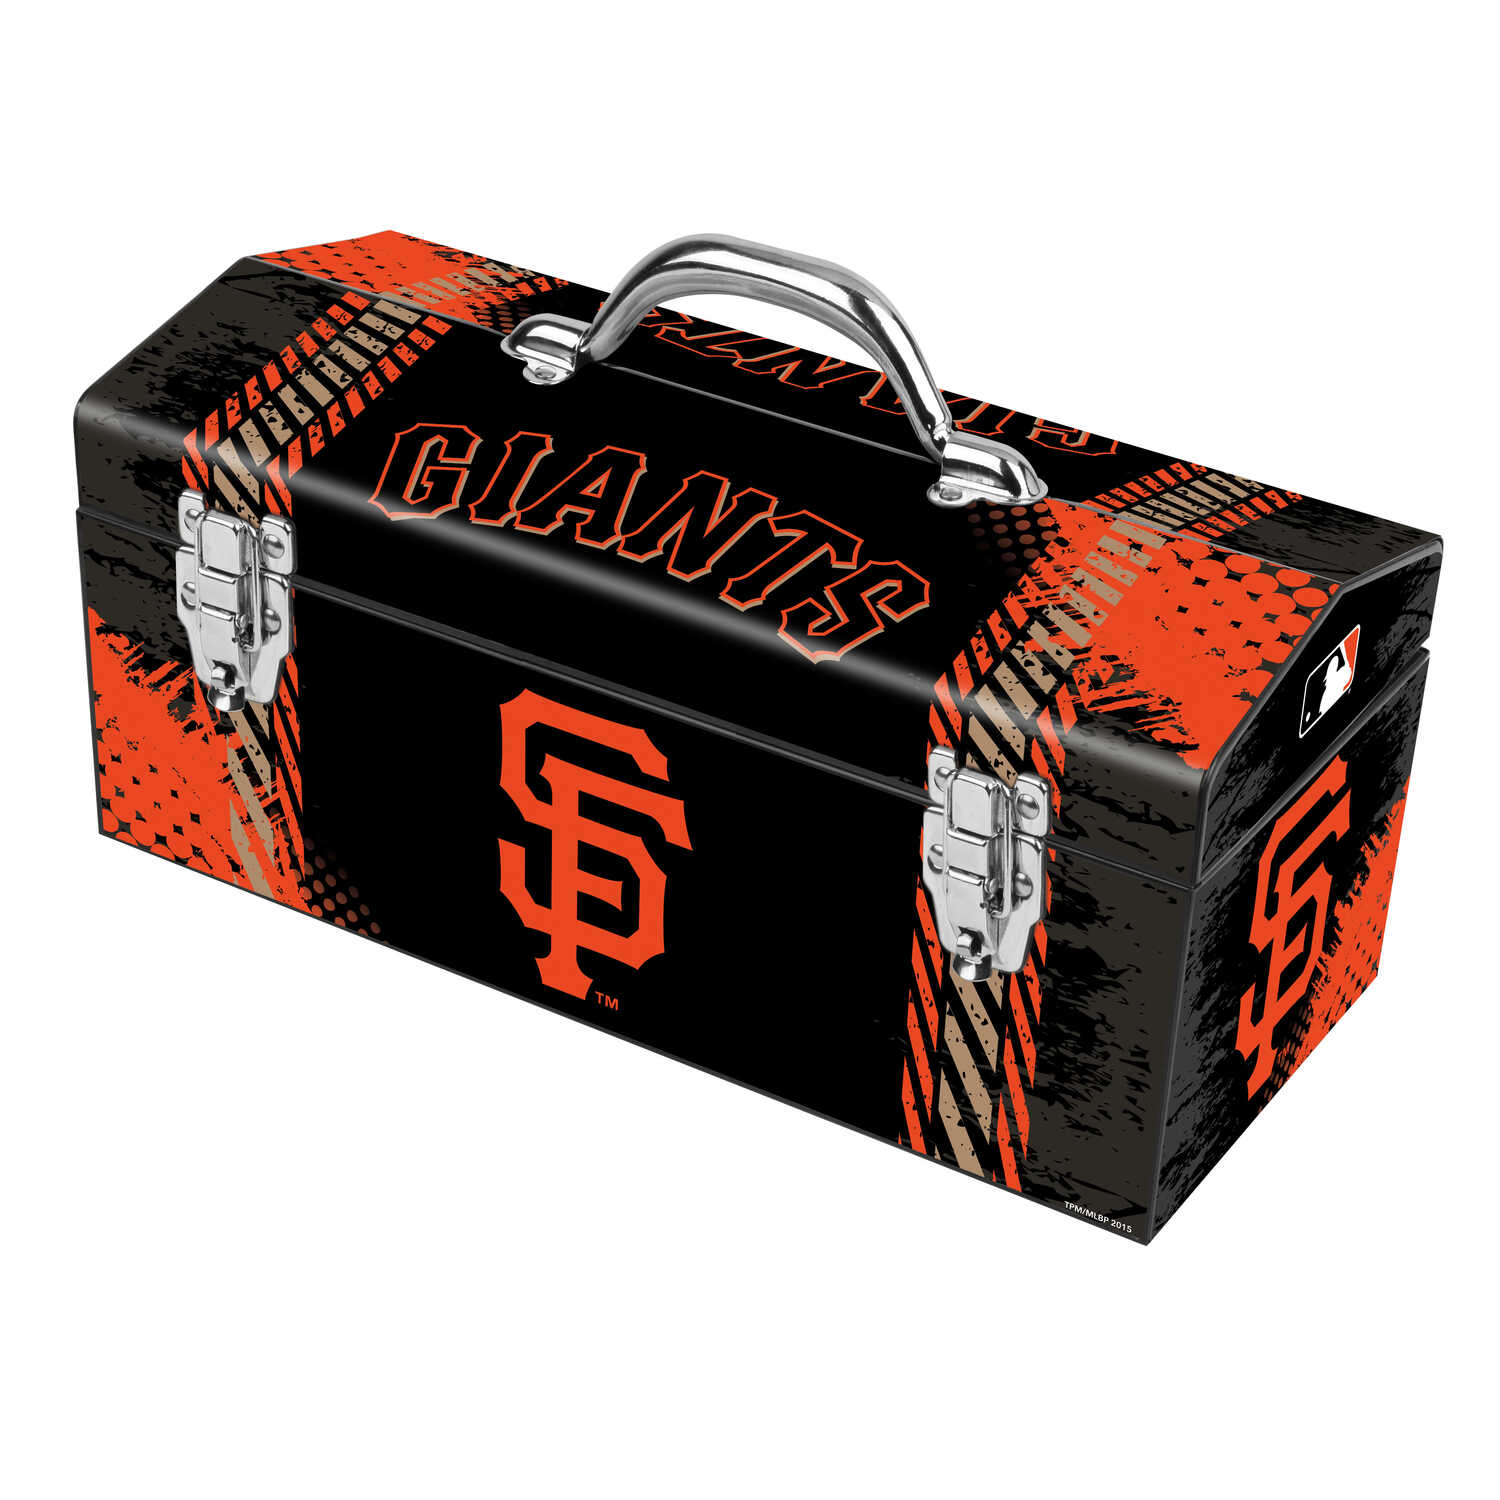 Windco  16.25 in. San Francisco Giants  Steel  7.1 in. W x 7.75 in. H Black/Orange  Art Deco Tool Bo